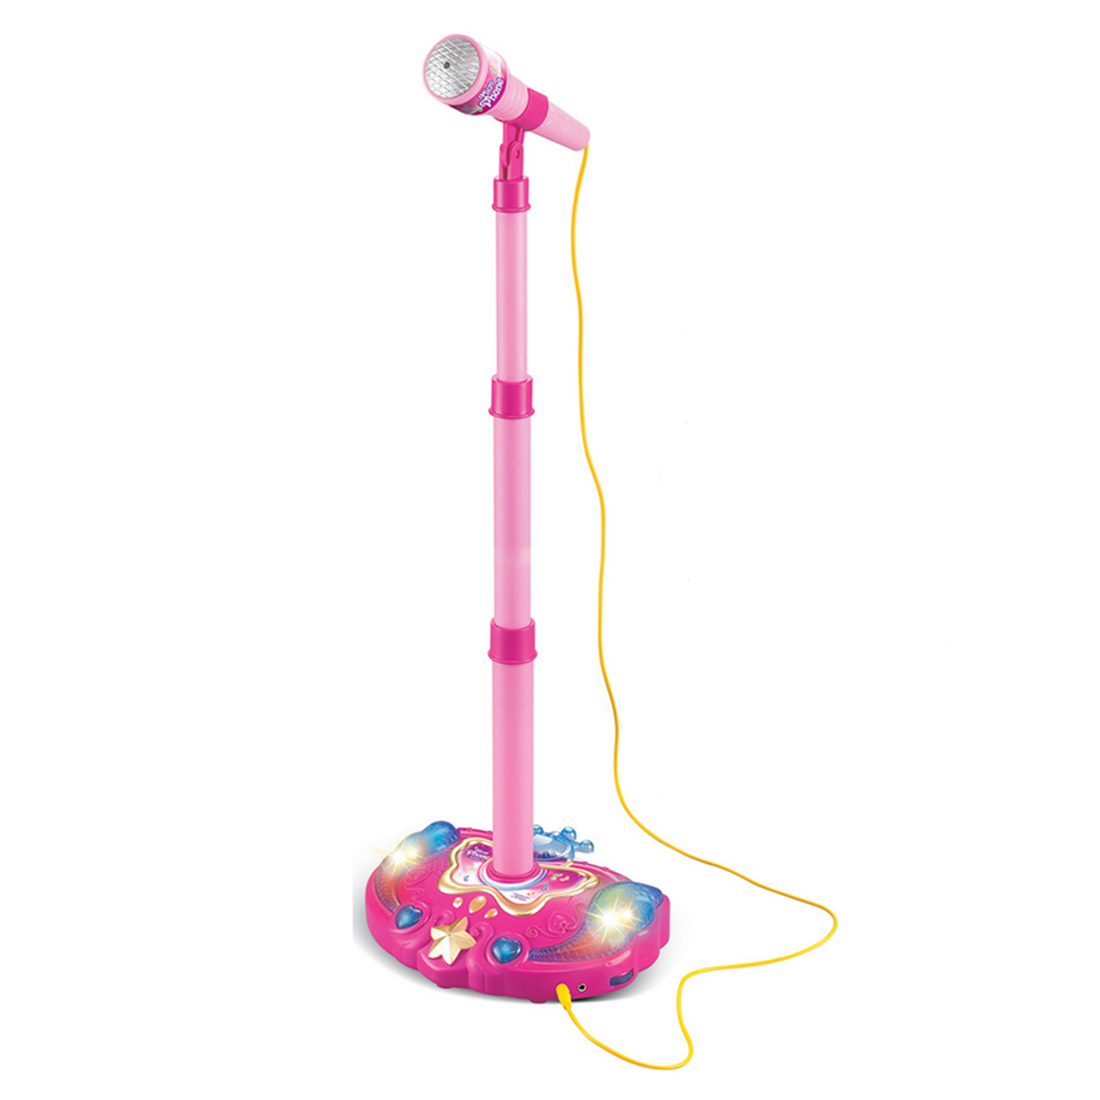 Hot Sale Kids Girls Karaoke Adjustable Stand Microphone Music Microphone Toy Musical Instrument With Light Effect Christmas Gift